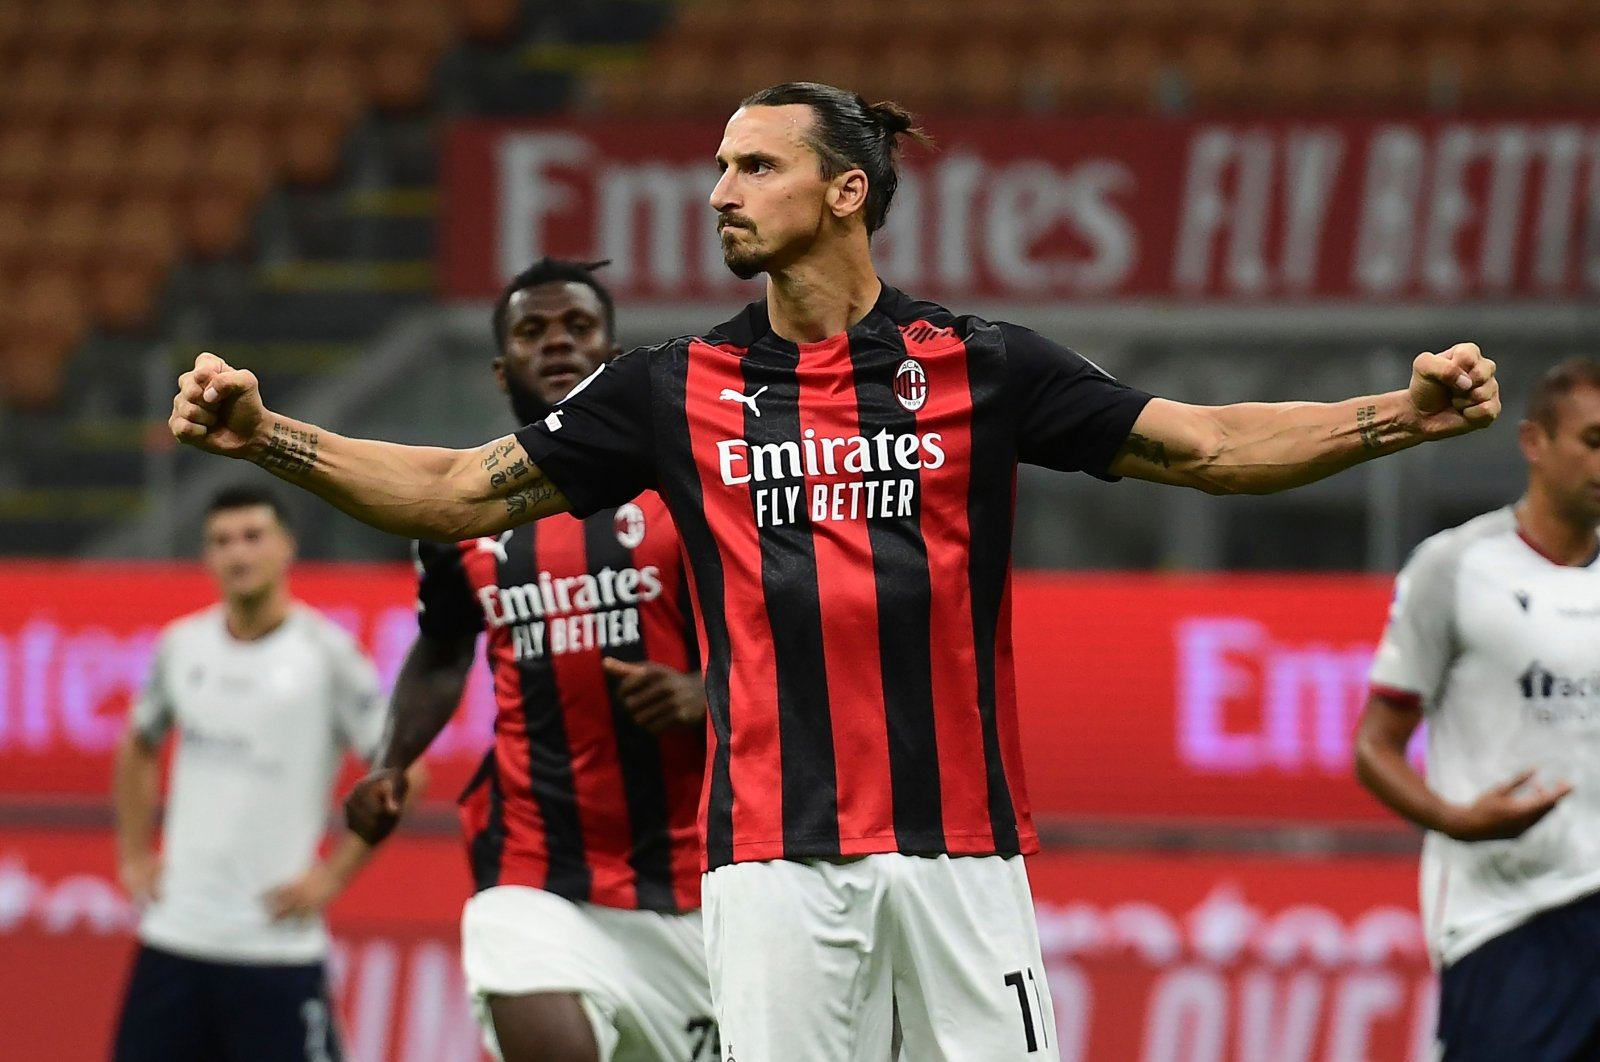 Zlatan Ibrahimovic celebrates after scoring a goal against Bologne, in Milan, Italy, Sept. 21, 2020. (AFP Photo)